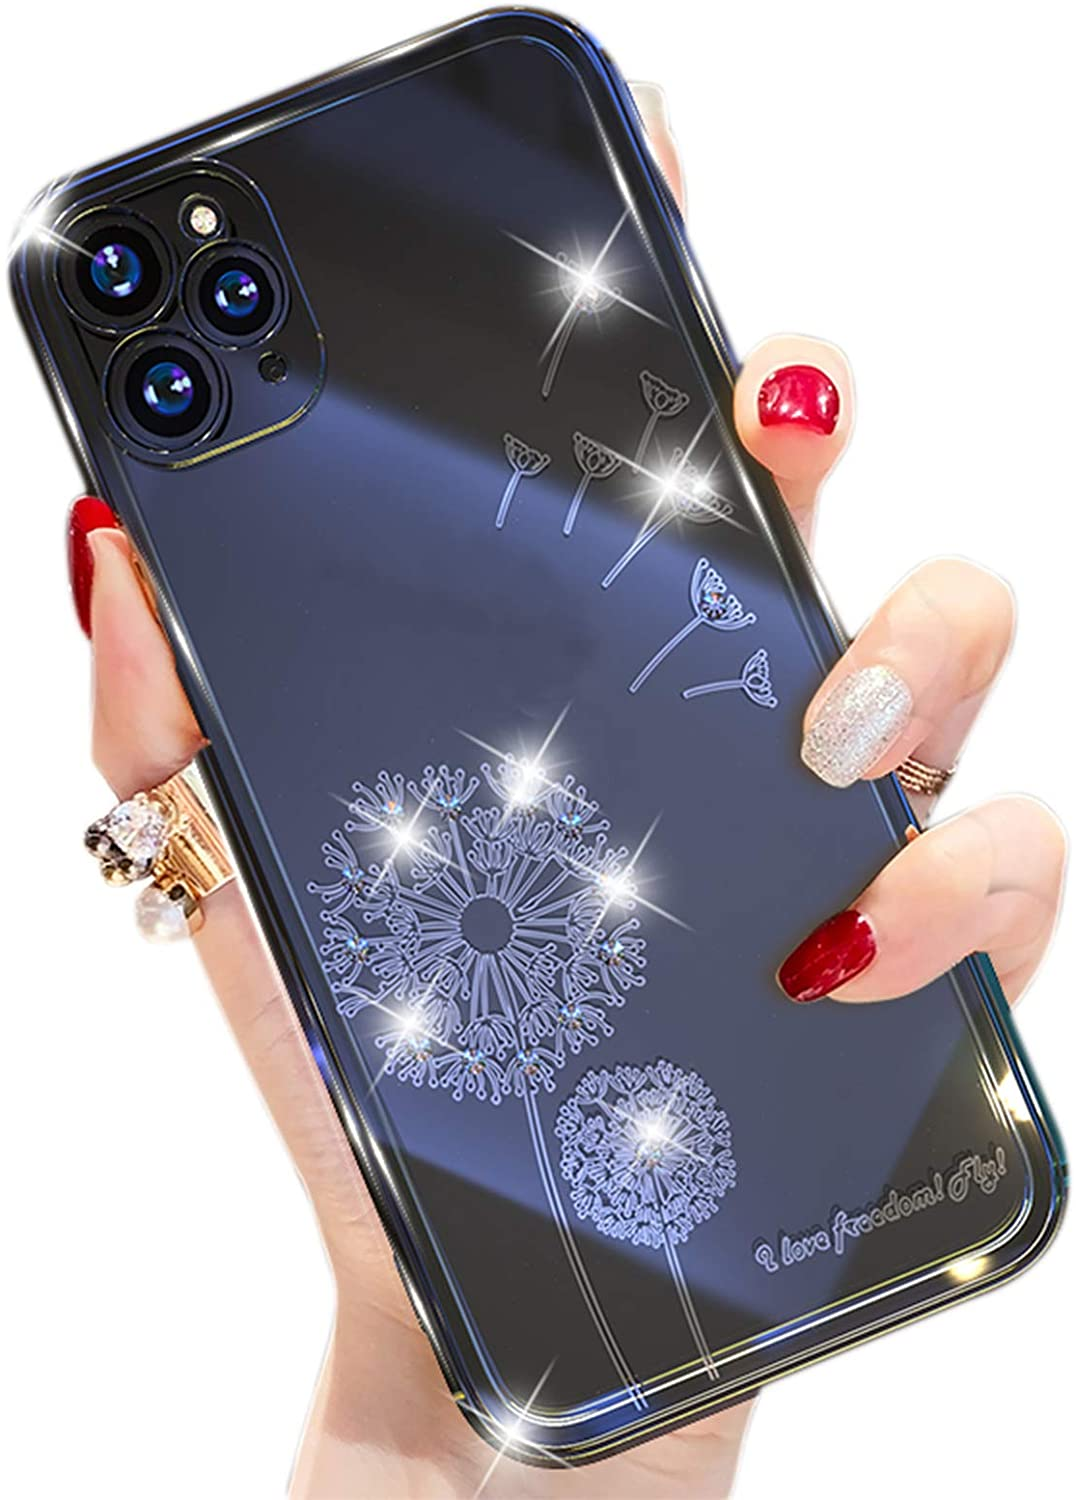 Luiryare Crystal Clear Case for iPhone 12/11/XS Case, Flashing Dandelion Shockproof Drop Protection Protective Phone Case for iPhone 12 Pro/12 Mini/11 Pro Max/XR